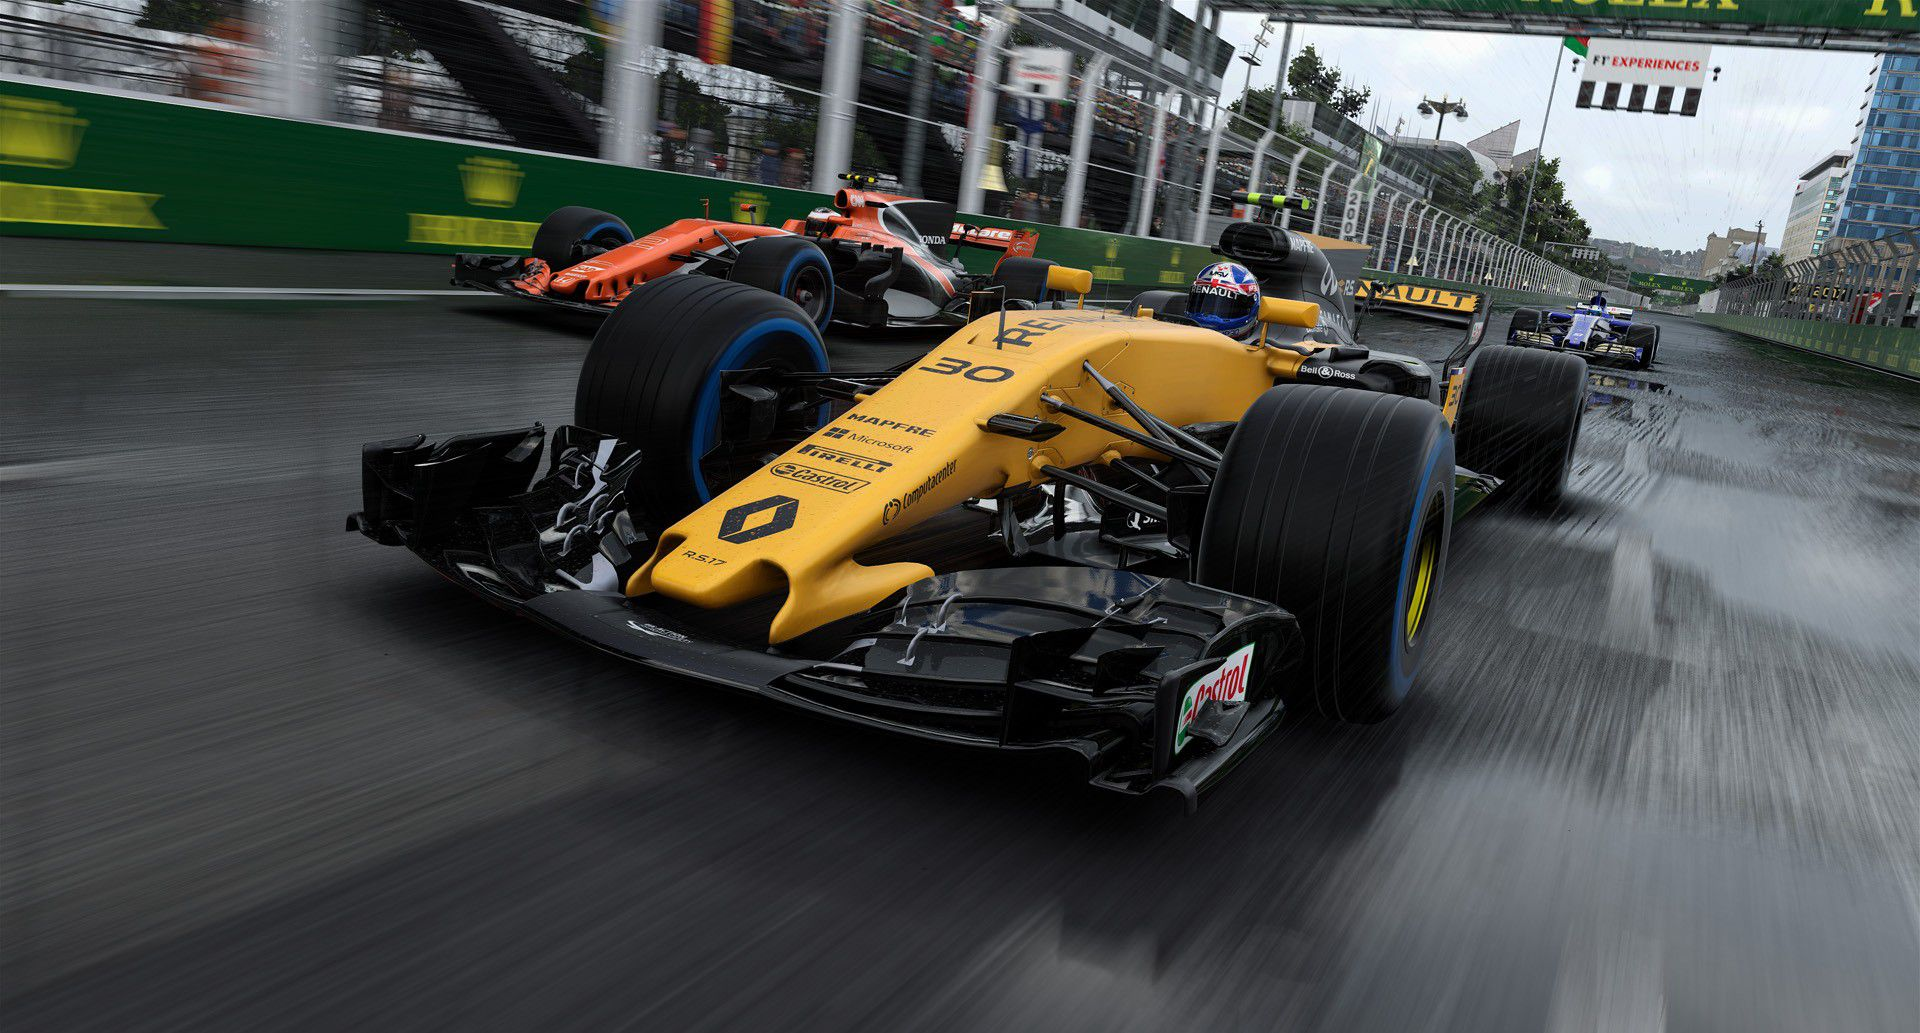 The 7 Best Car Racing Games For Ps4 In 2019